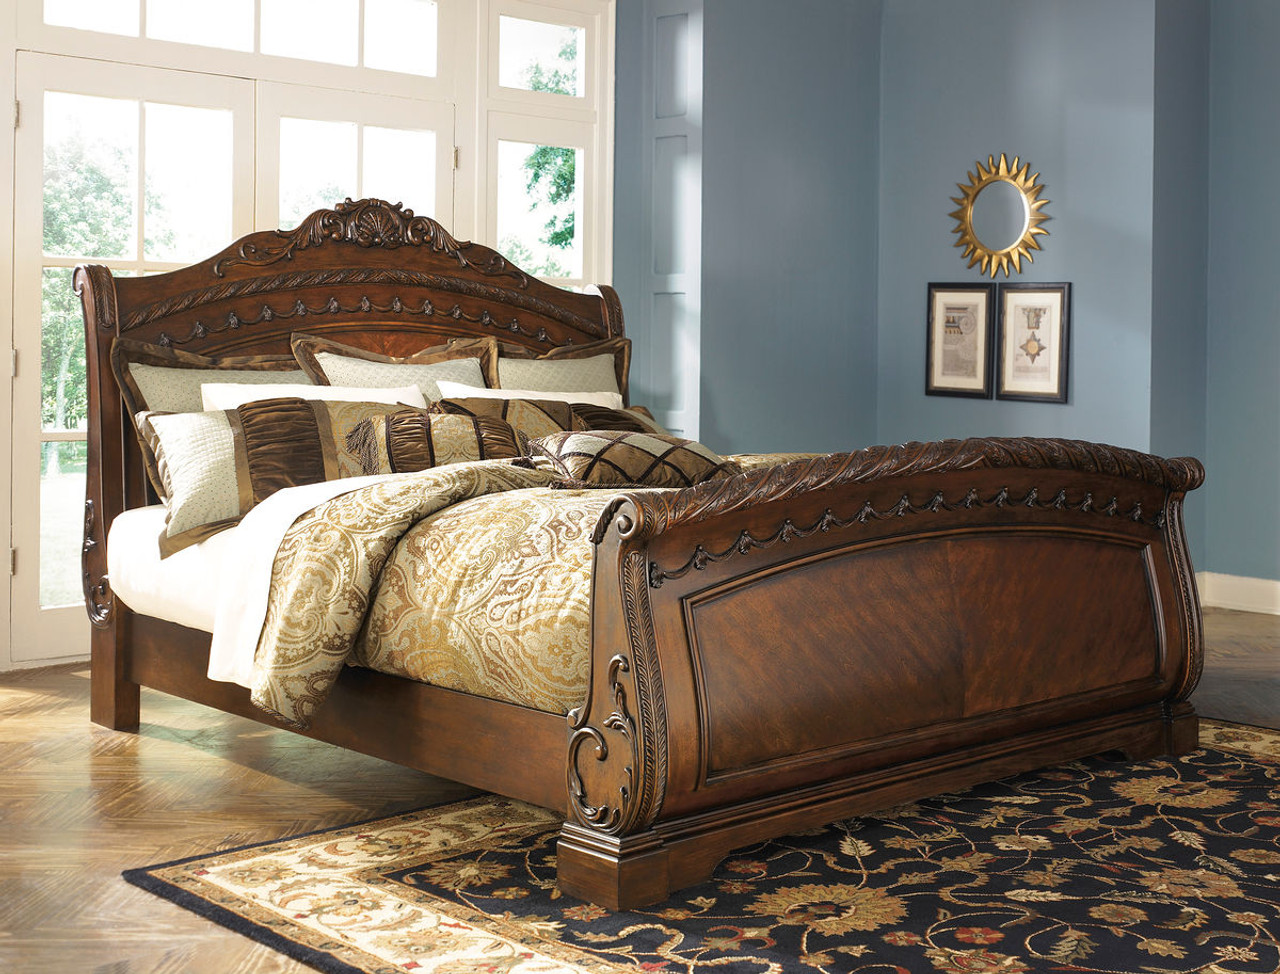 The north shore california king sleigh bed available at logan furniture serving dorchester ma